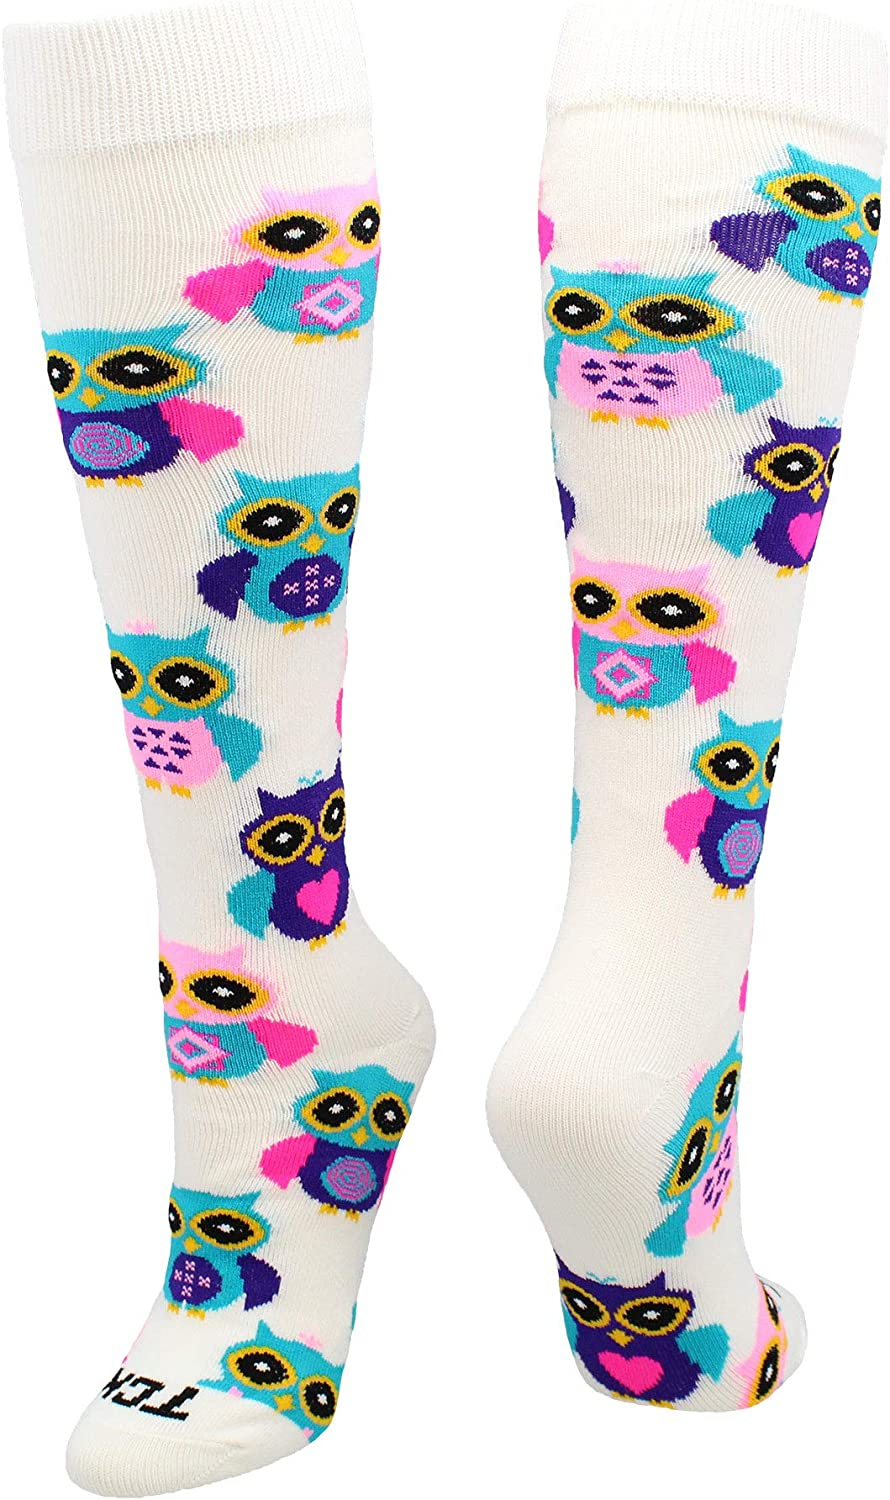 TCK Krazisox Owl Socks Over The Calf